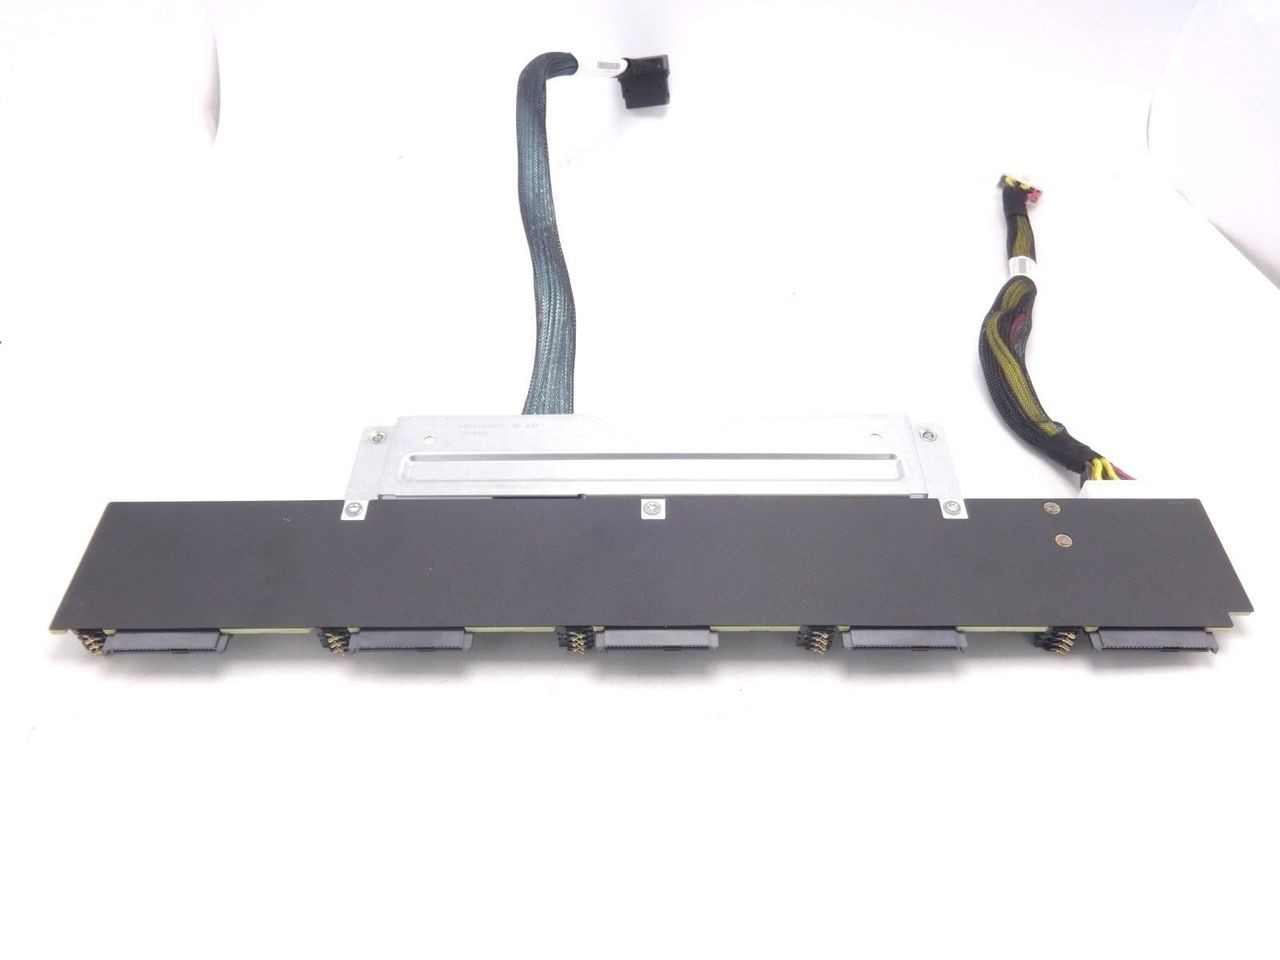 HP 739405-B21 DL580 G8 SFF Drive Backplane Kit 735520-001